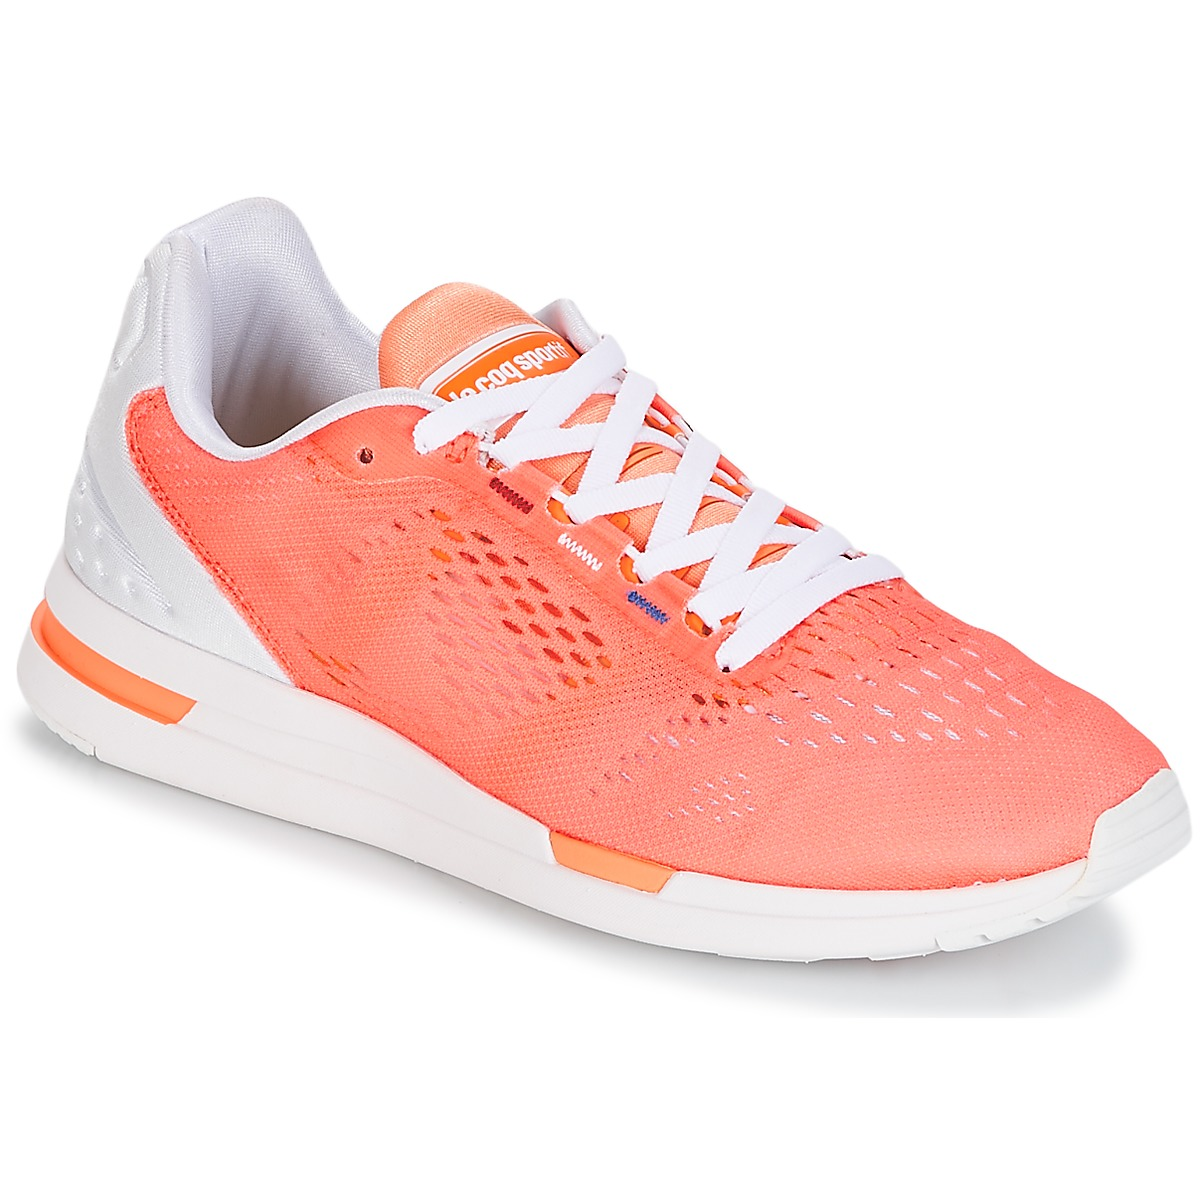 Le Coq Sportif LCS R PRO W ENGINEERED MESH Papaya / Punch - Kostenloser Versand bei Spartoode ! - Schuhe Sneaker Low Damen 83,30 €